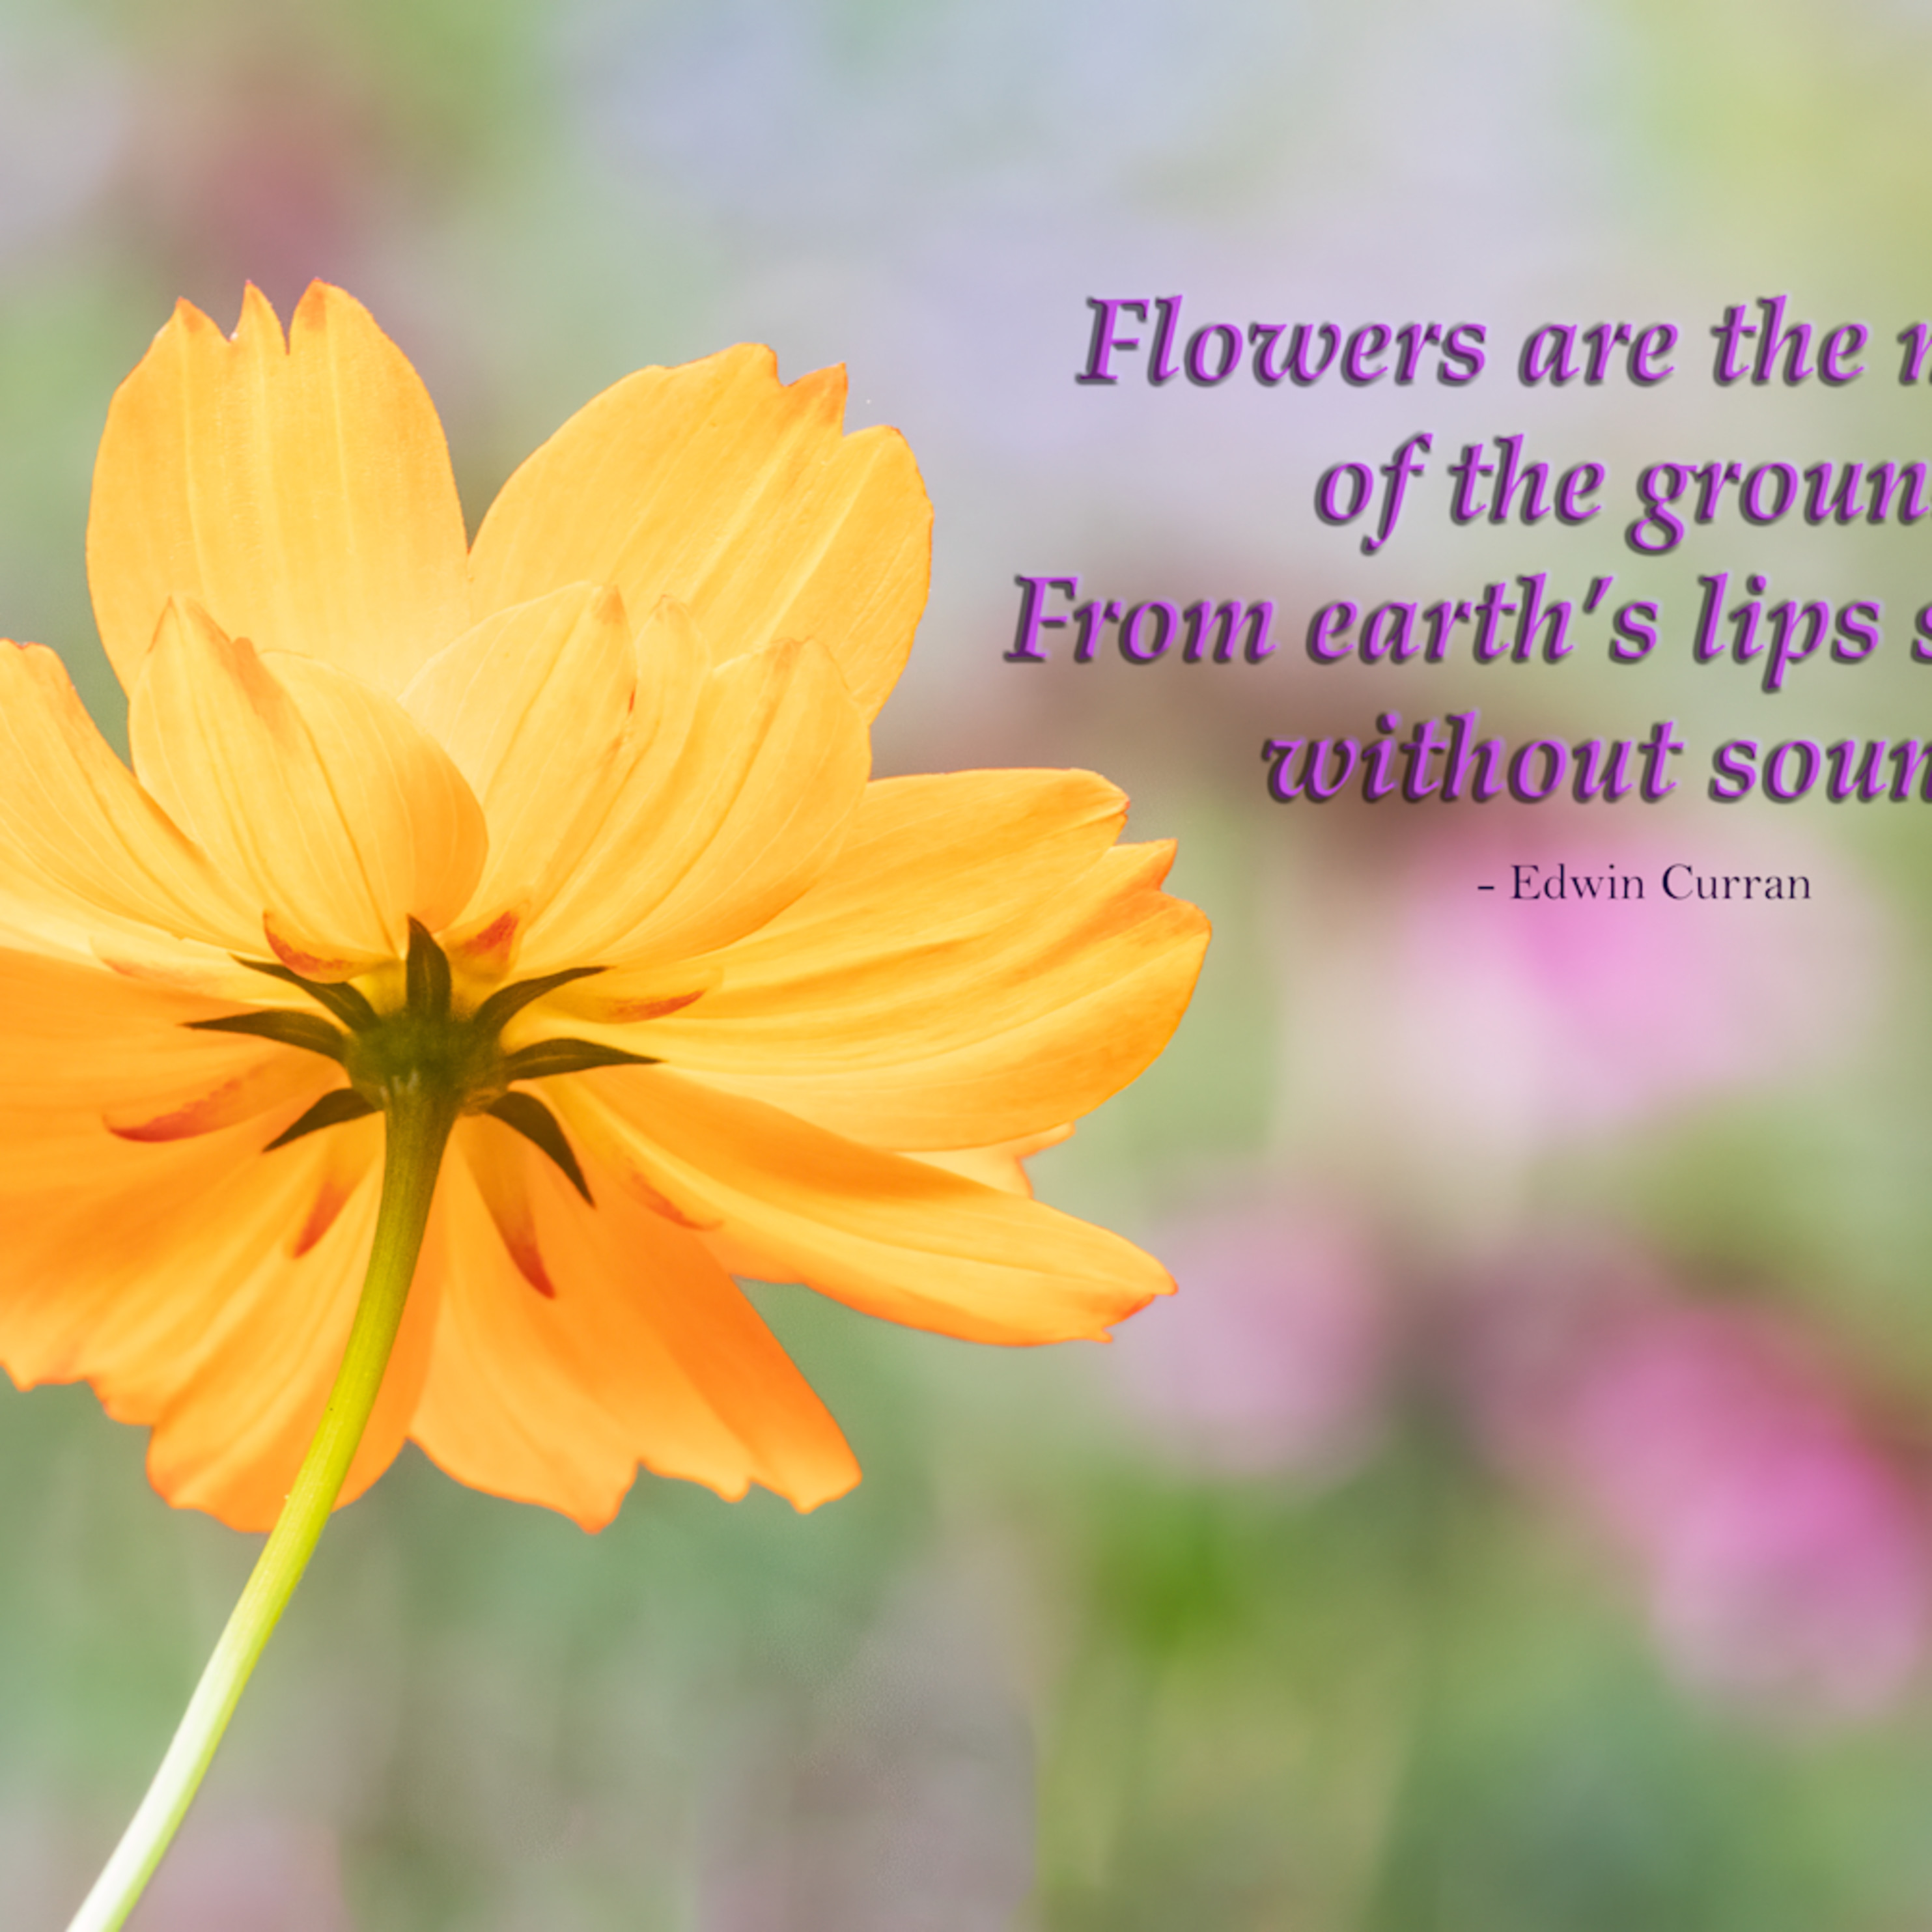 Flowers are the music of the ground m7zstr